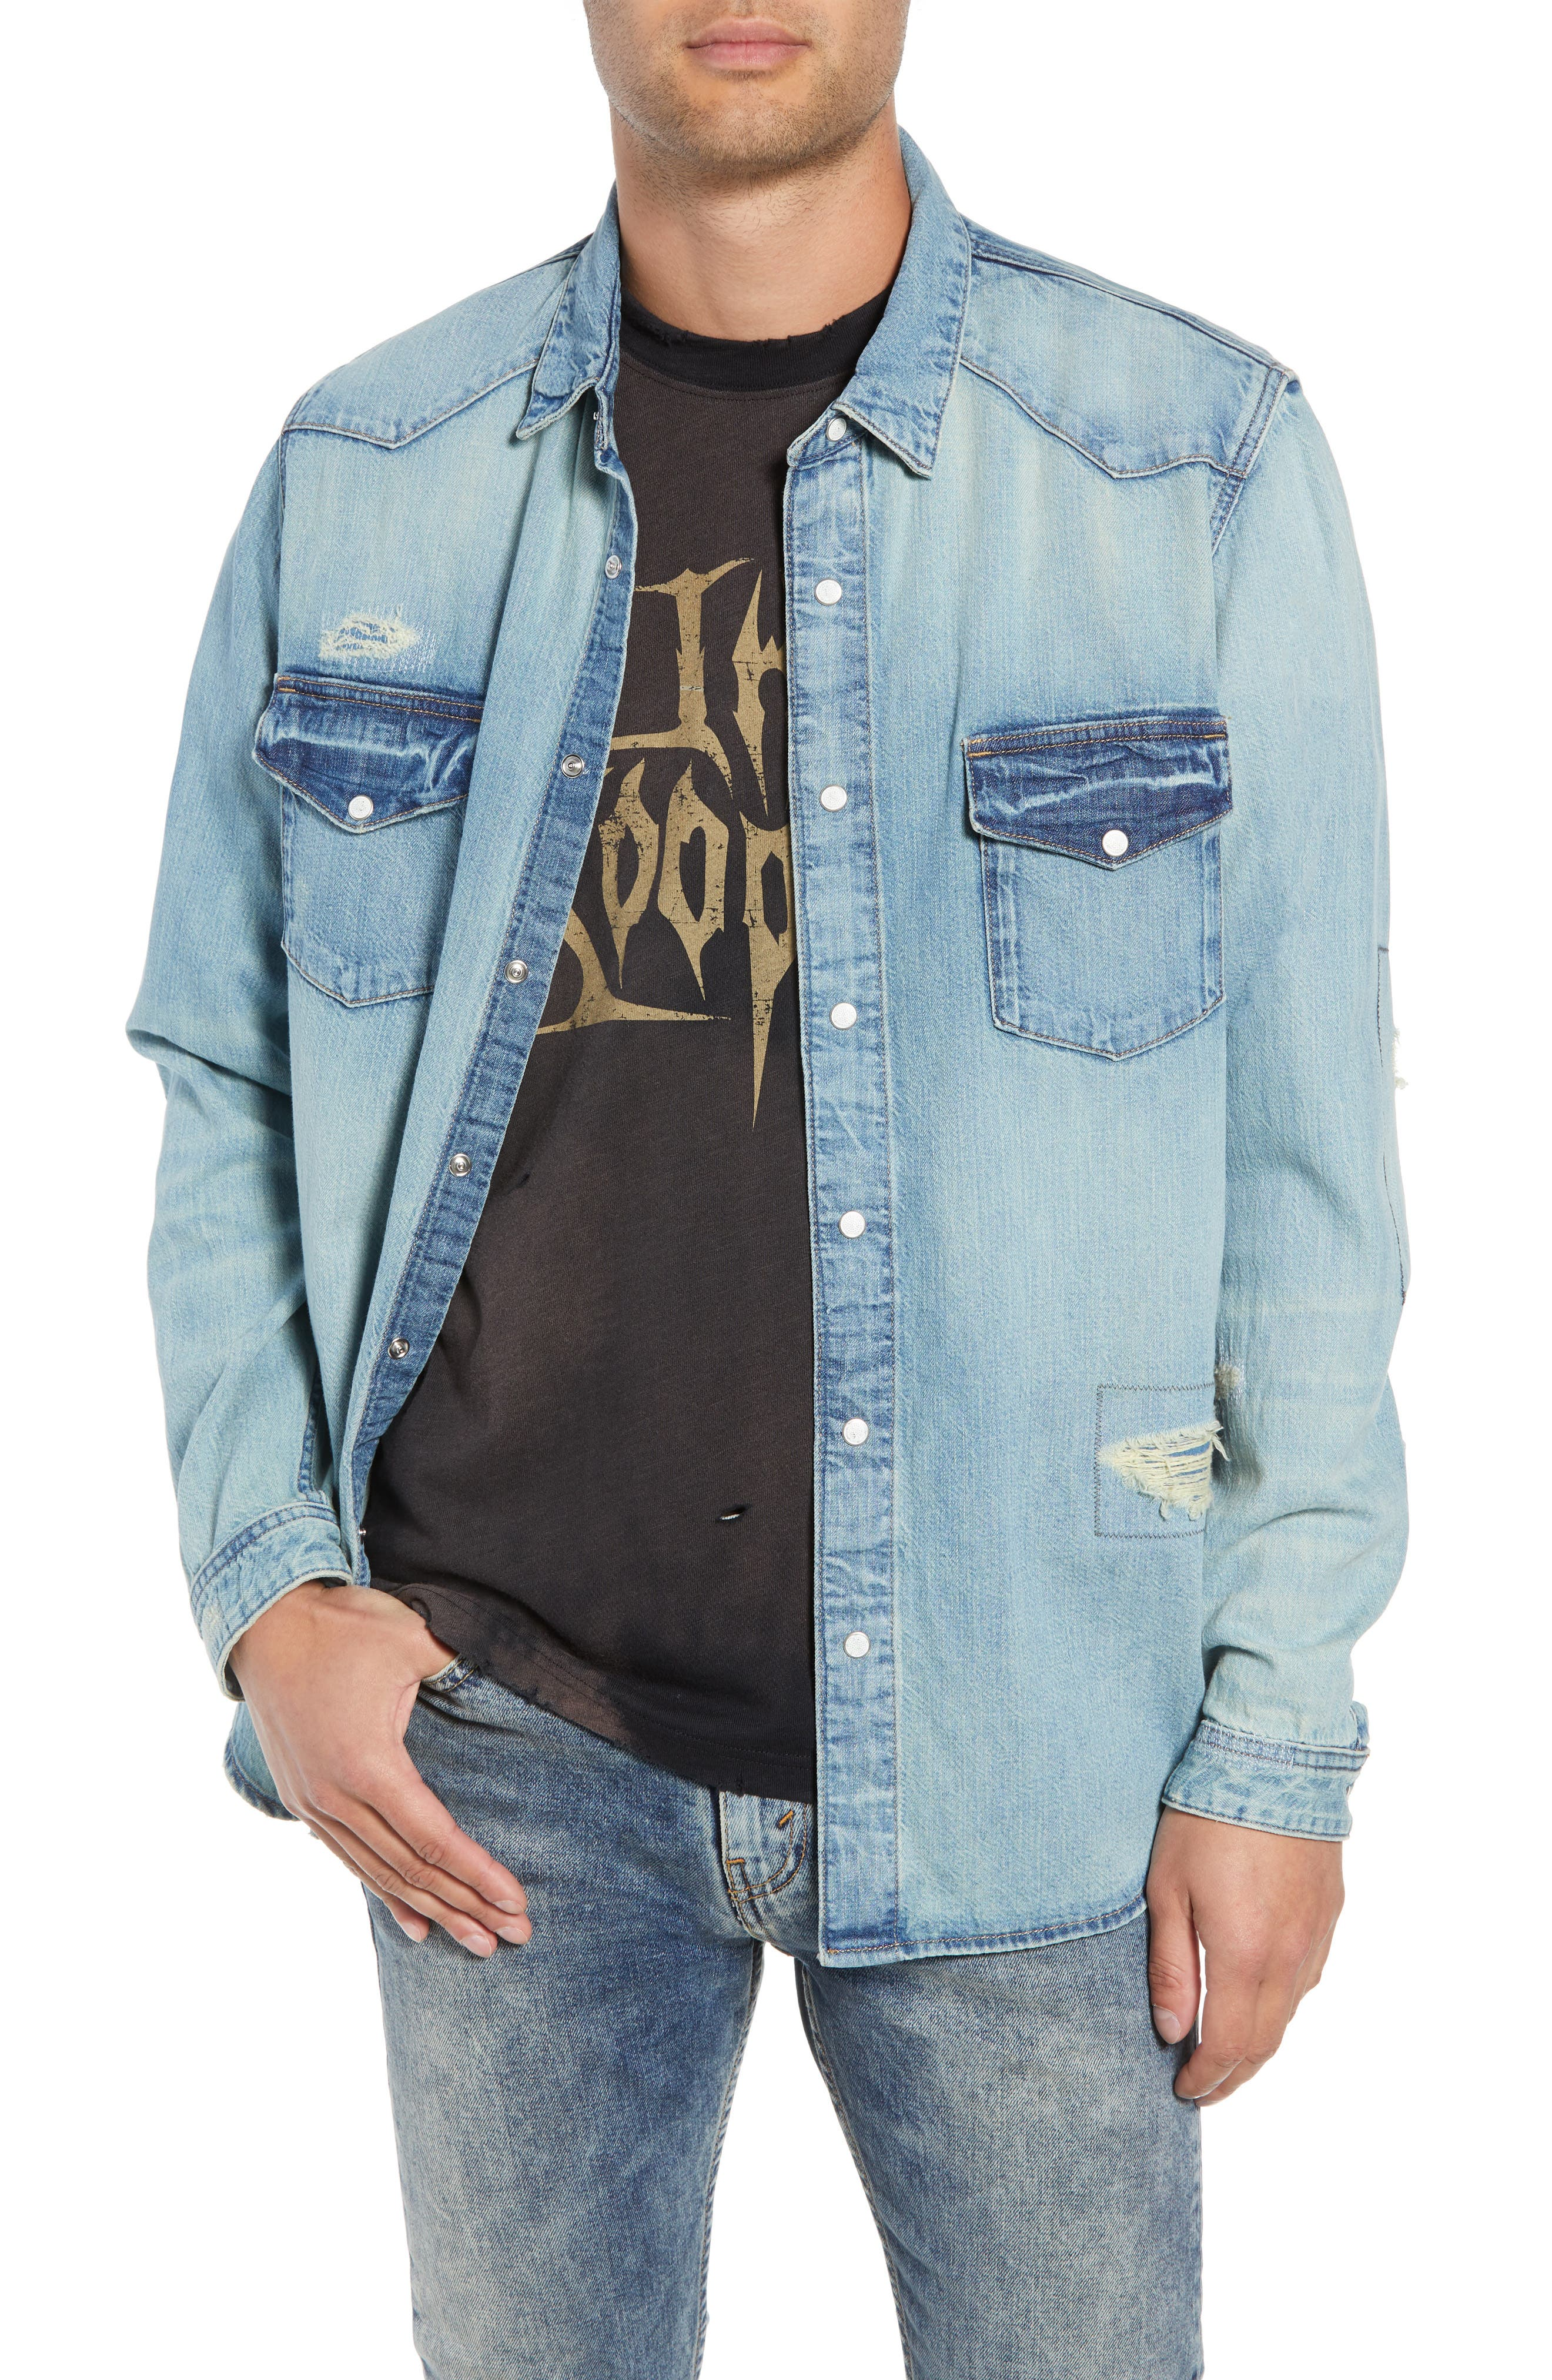 Western Denim Sport Shirt,                             Main thumbnail 1, color,                             450